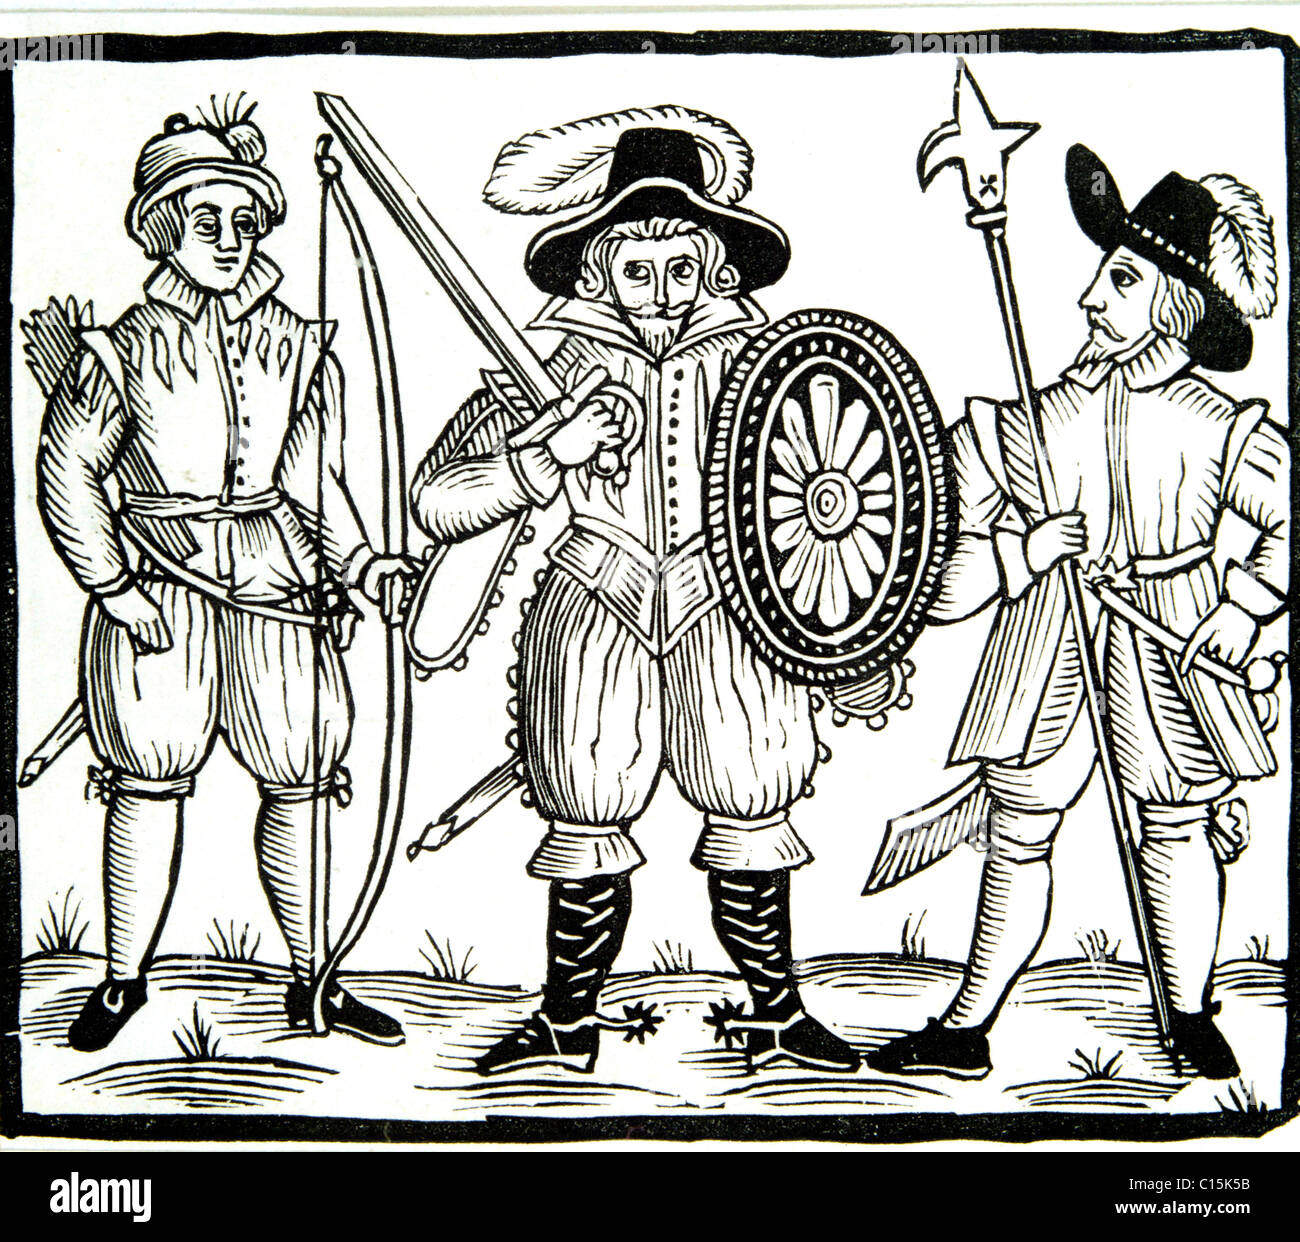 Early representation of Robin Hood, Will Scarlet and Little John from a 17th cent. Ballad. - Stock Image